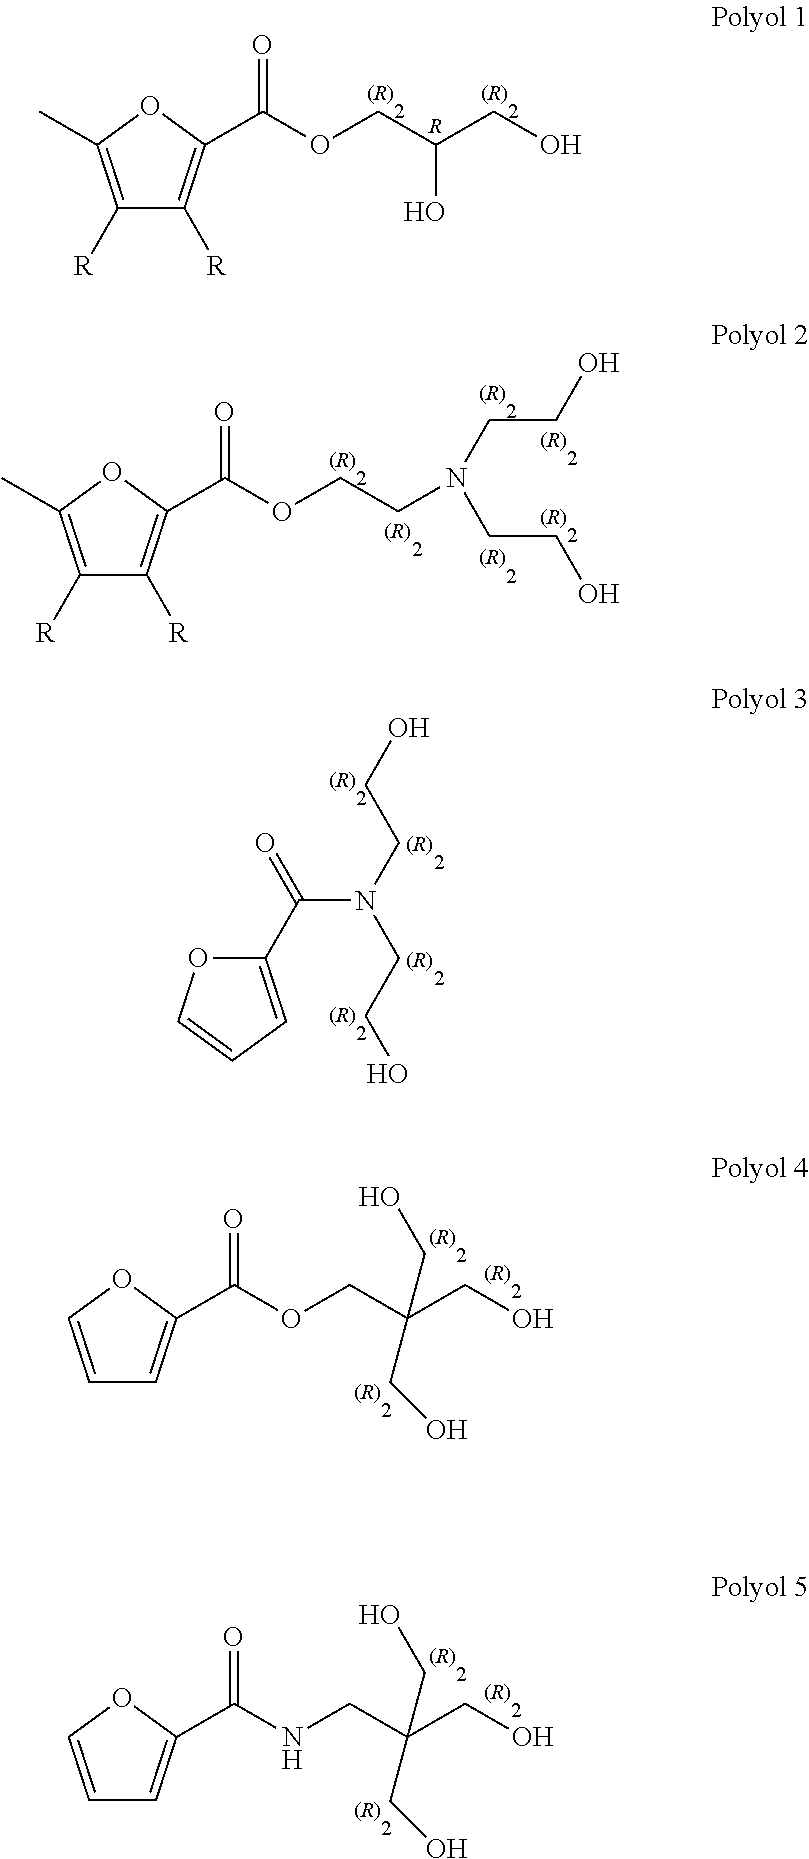 US9290698B2 - Biobased polyols for potential use as flame retardants